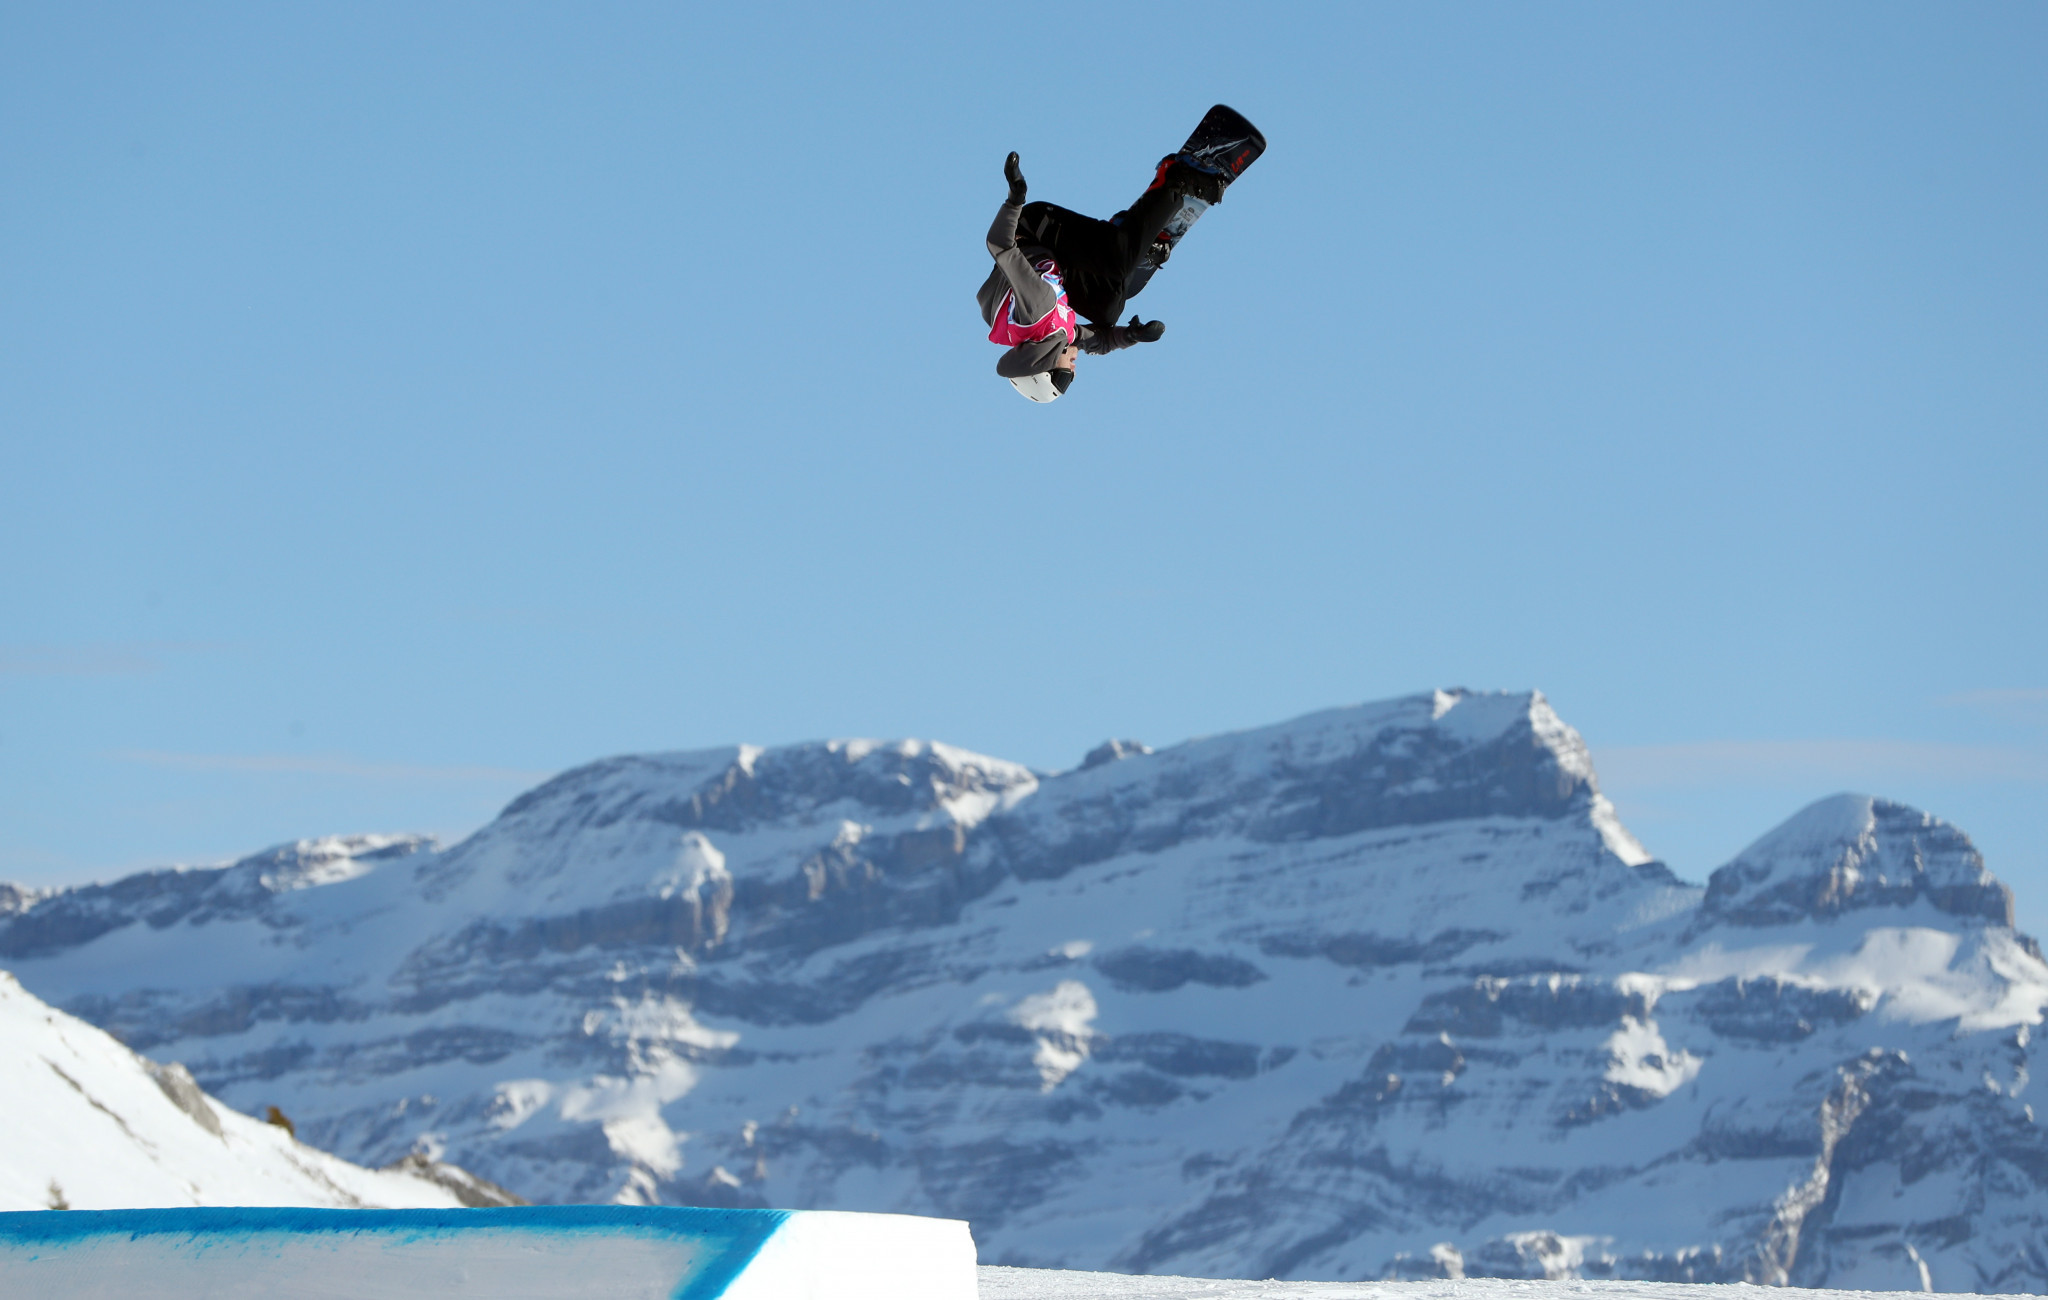 Four snowboard gold medals were on offer on day 11 ©Getty Images